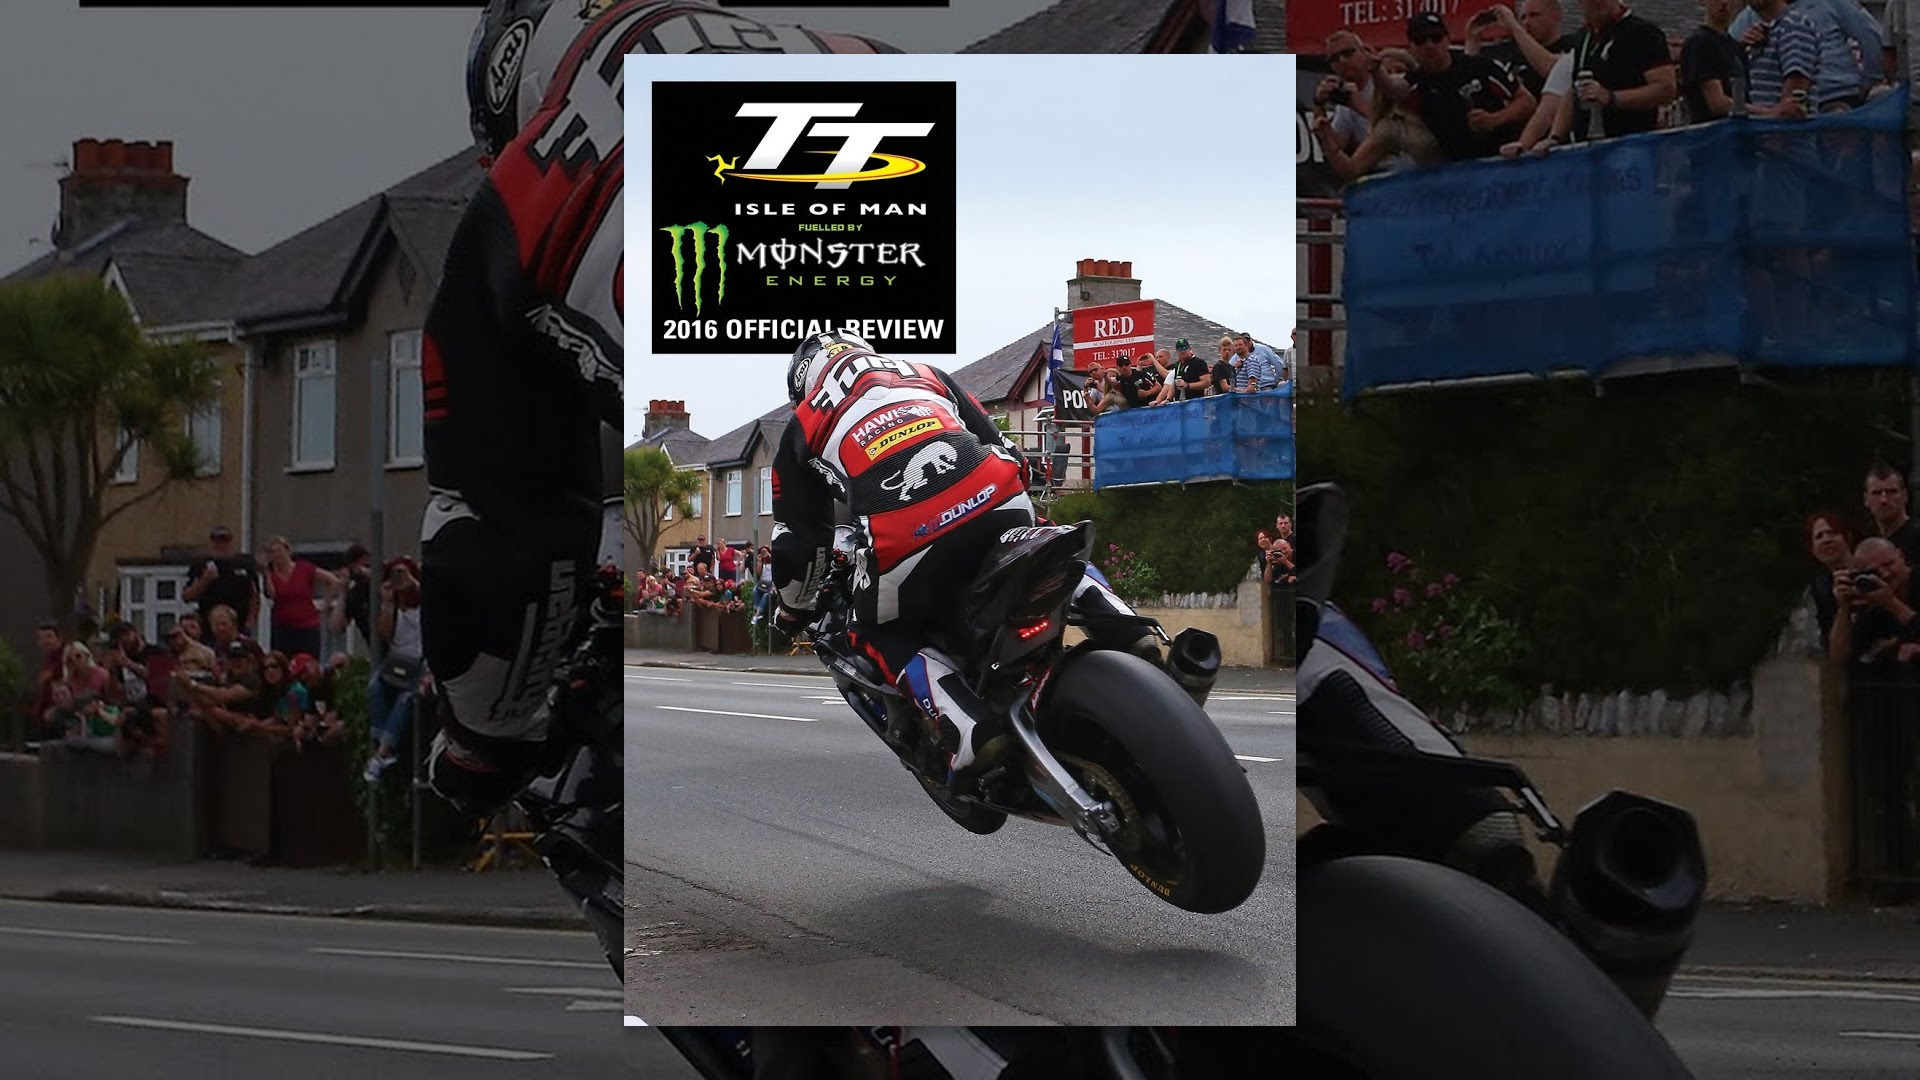 Isle of Man TT Review 2016